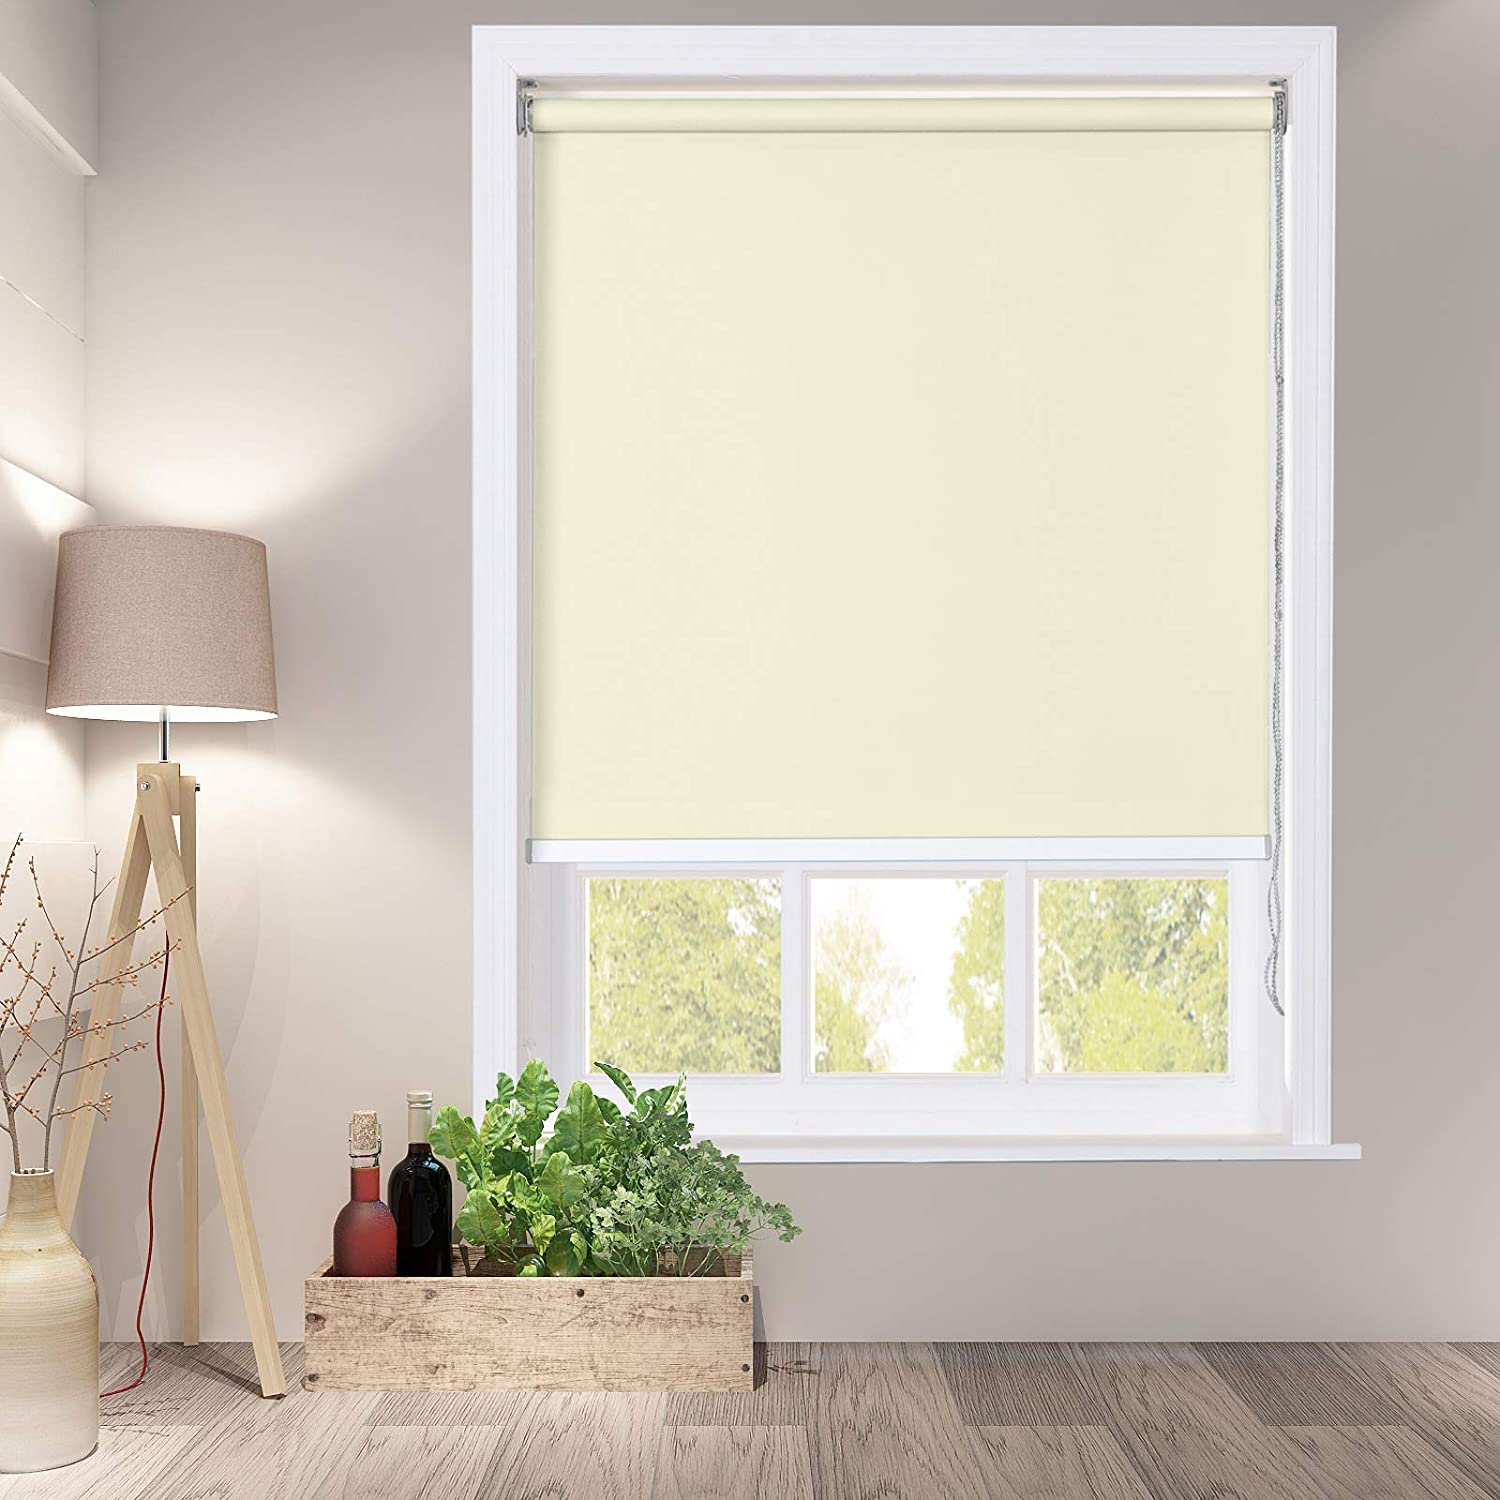 ChadMade 100% Blackout Roller Blind for Window Thermal Insulated Waterproof Fabric Custom Roller Shade Beige for Bedroom Bathroom Kitchen